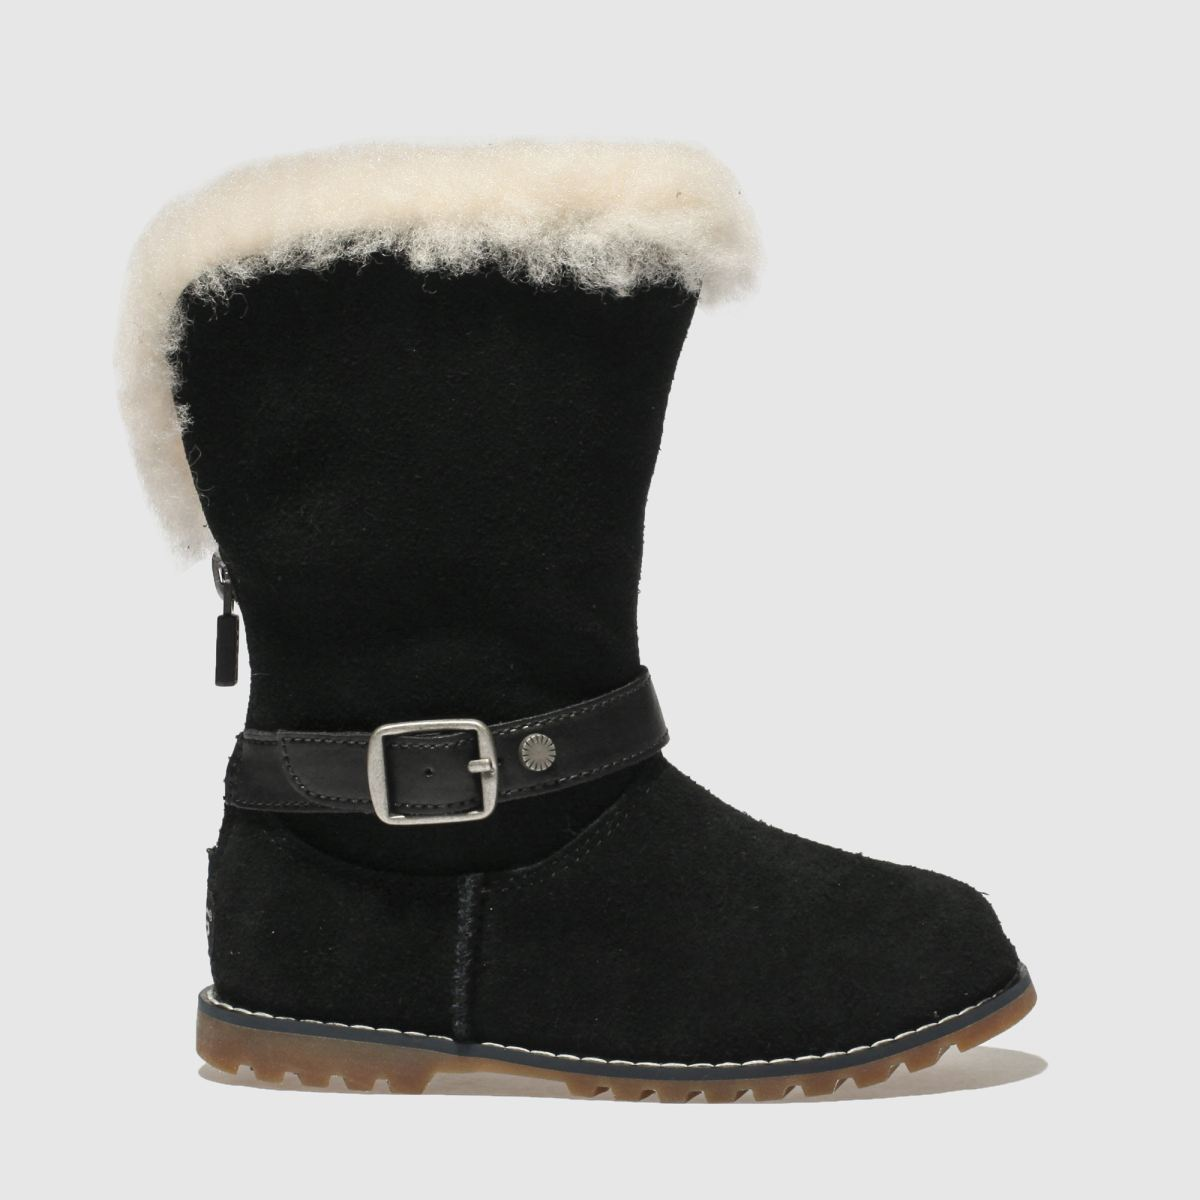 Ugg Black Nessa Boots Toddler